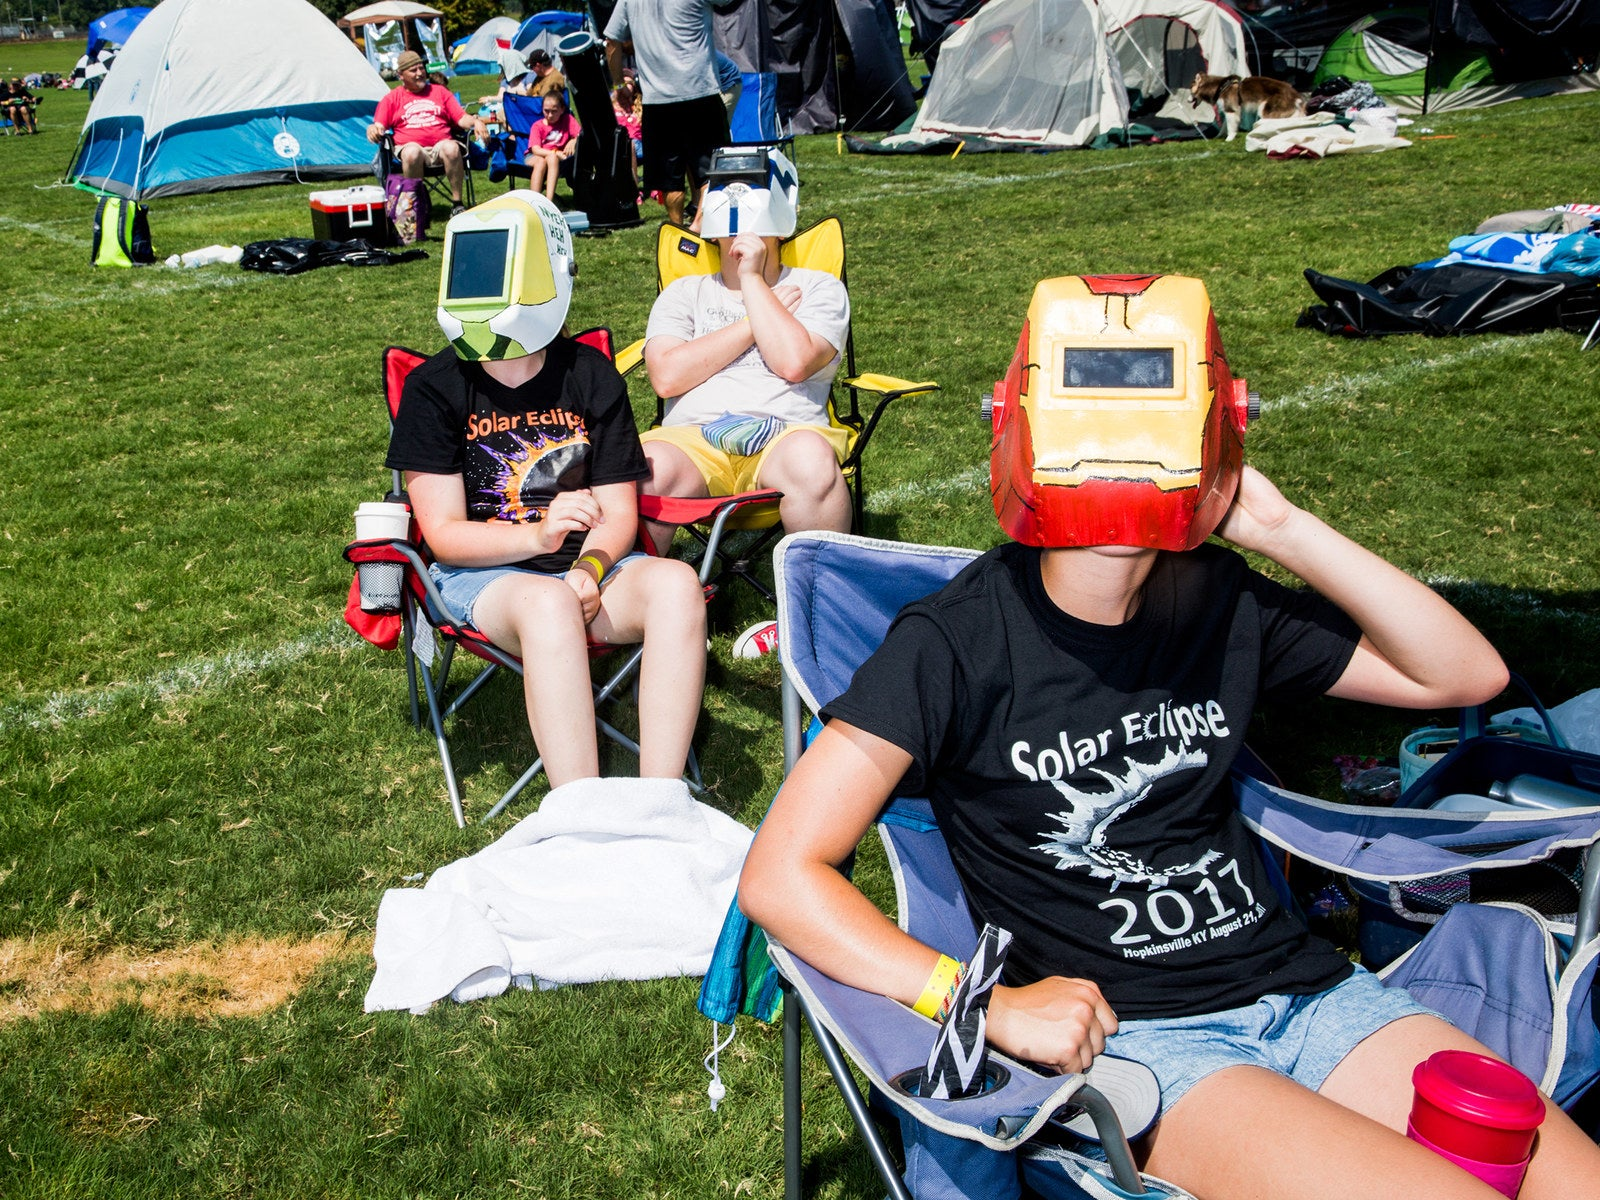 Residents and visitors of Hopkinsville, Kentucky, look on at the total solar eclipse on Aug. 21.